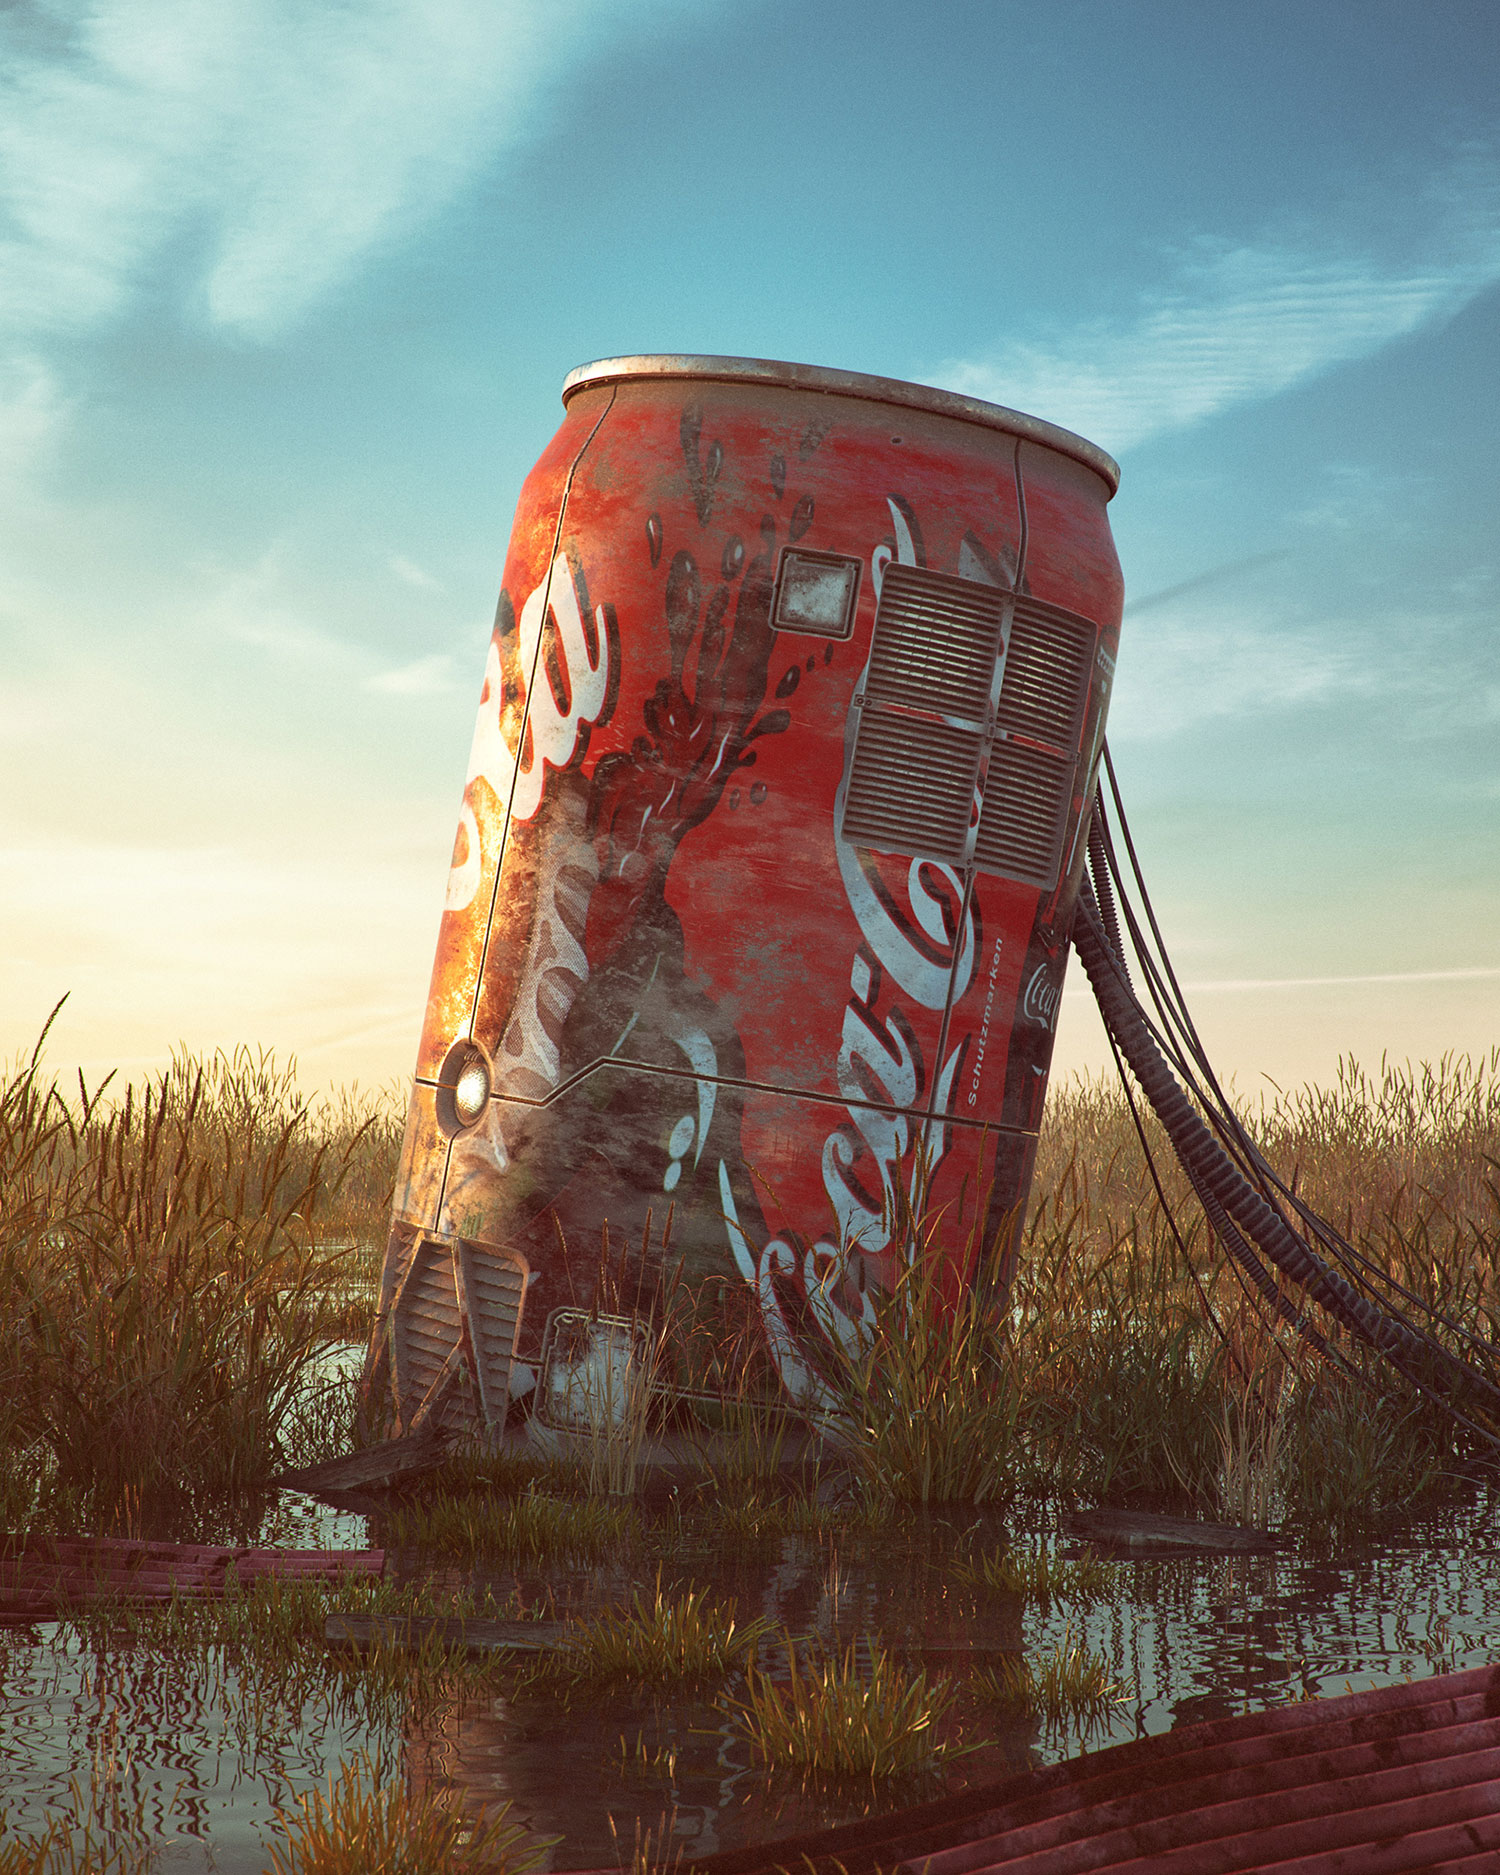 Filip Hodas - Pop culture dystopia, Coca Cola can